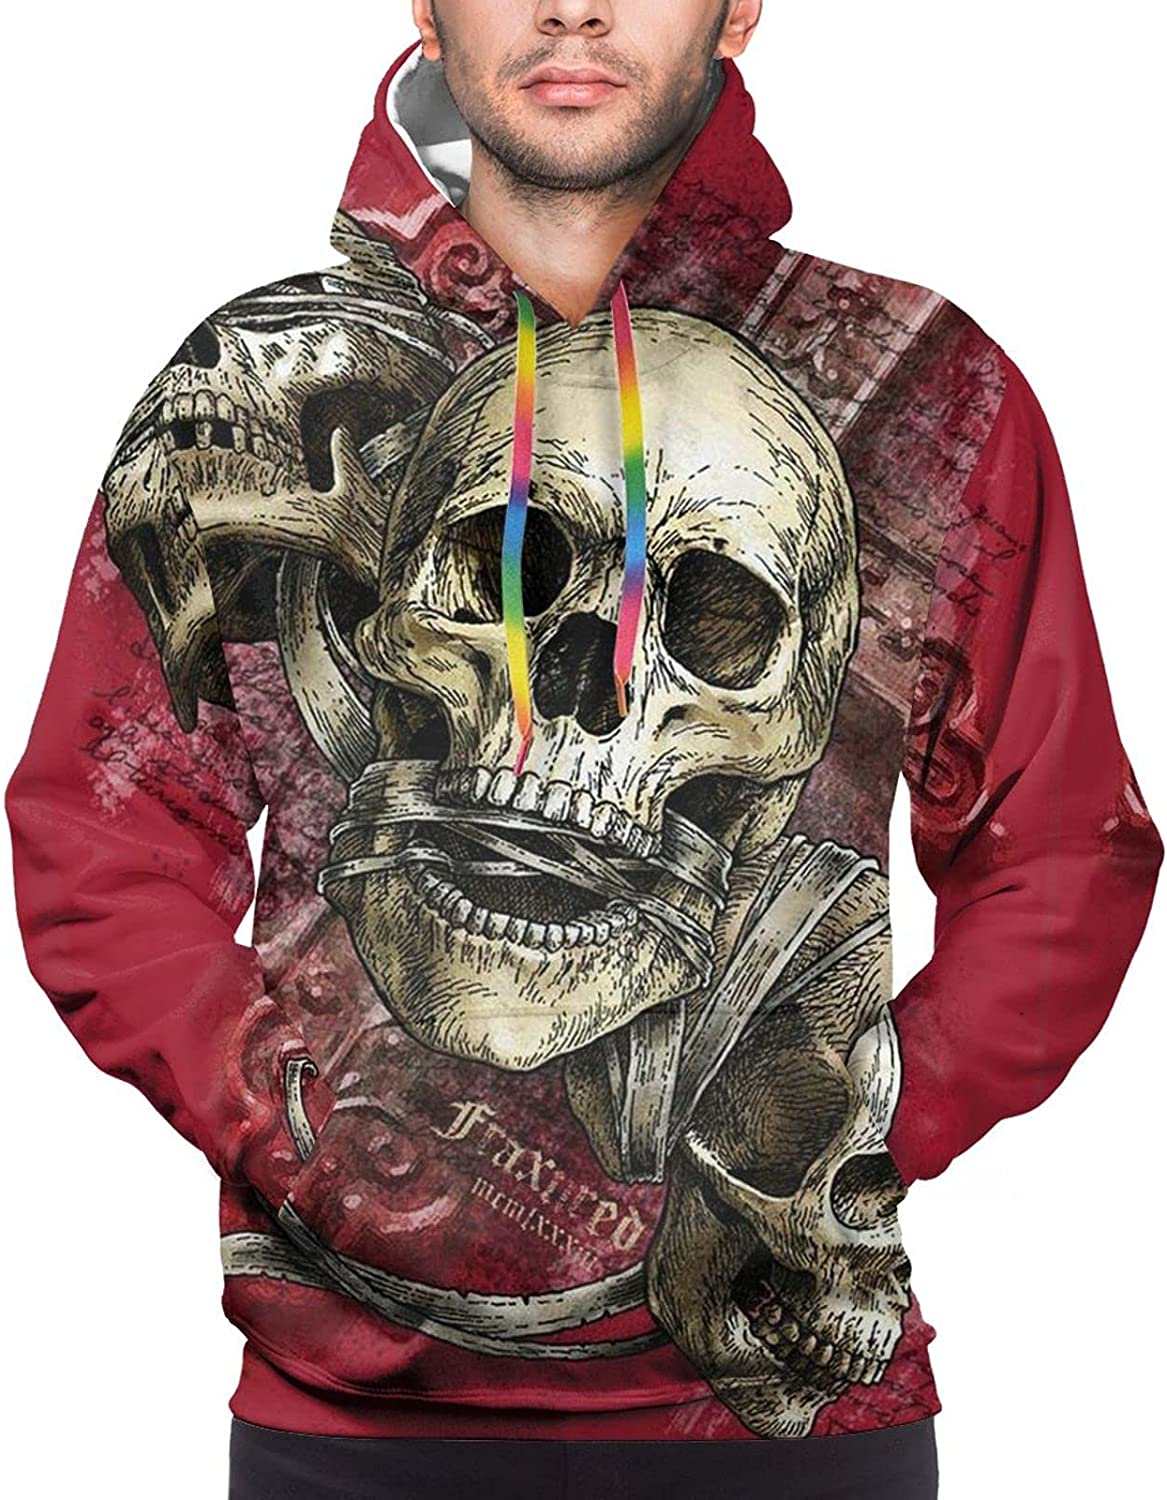 Hoodie For Teens Boys Girls Red Back Skull Face Hoodies Outdoor Sports Sweater